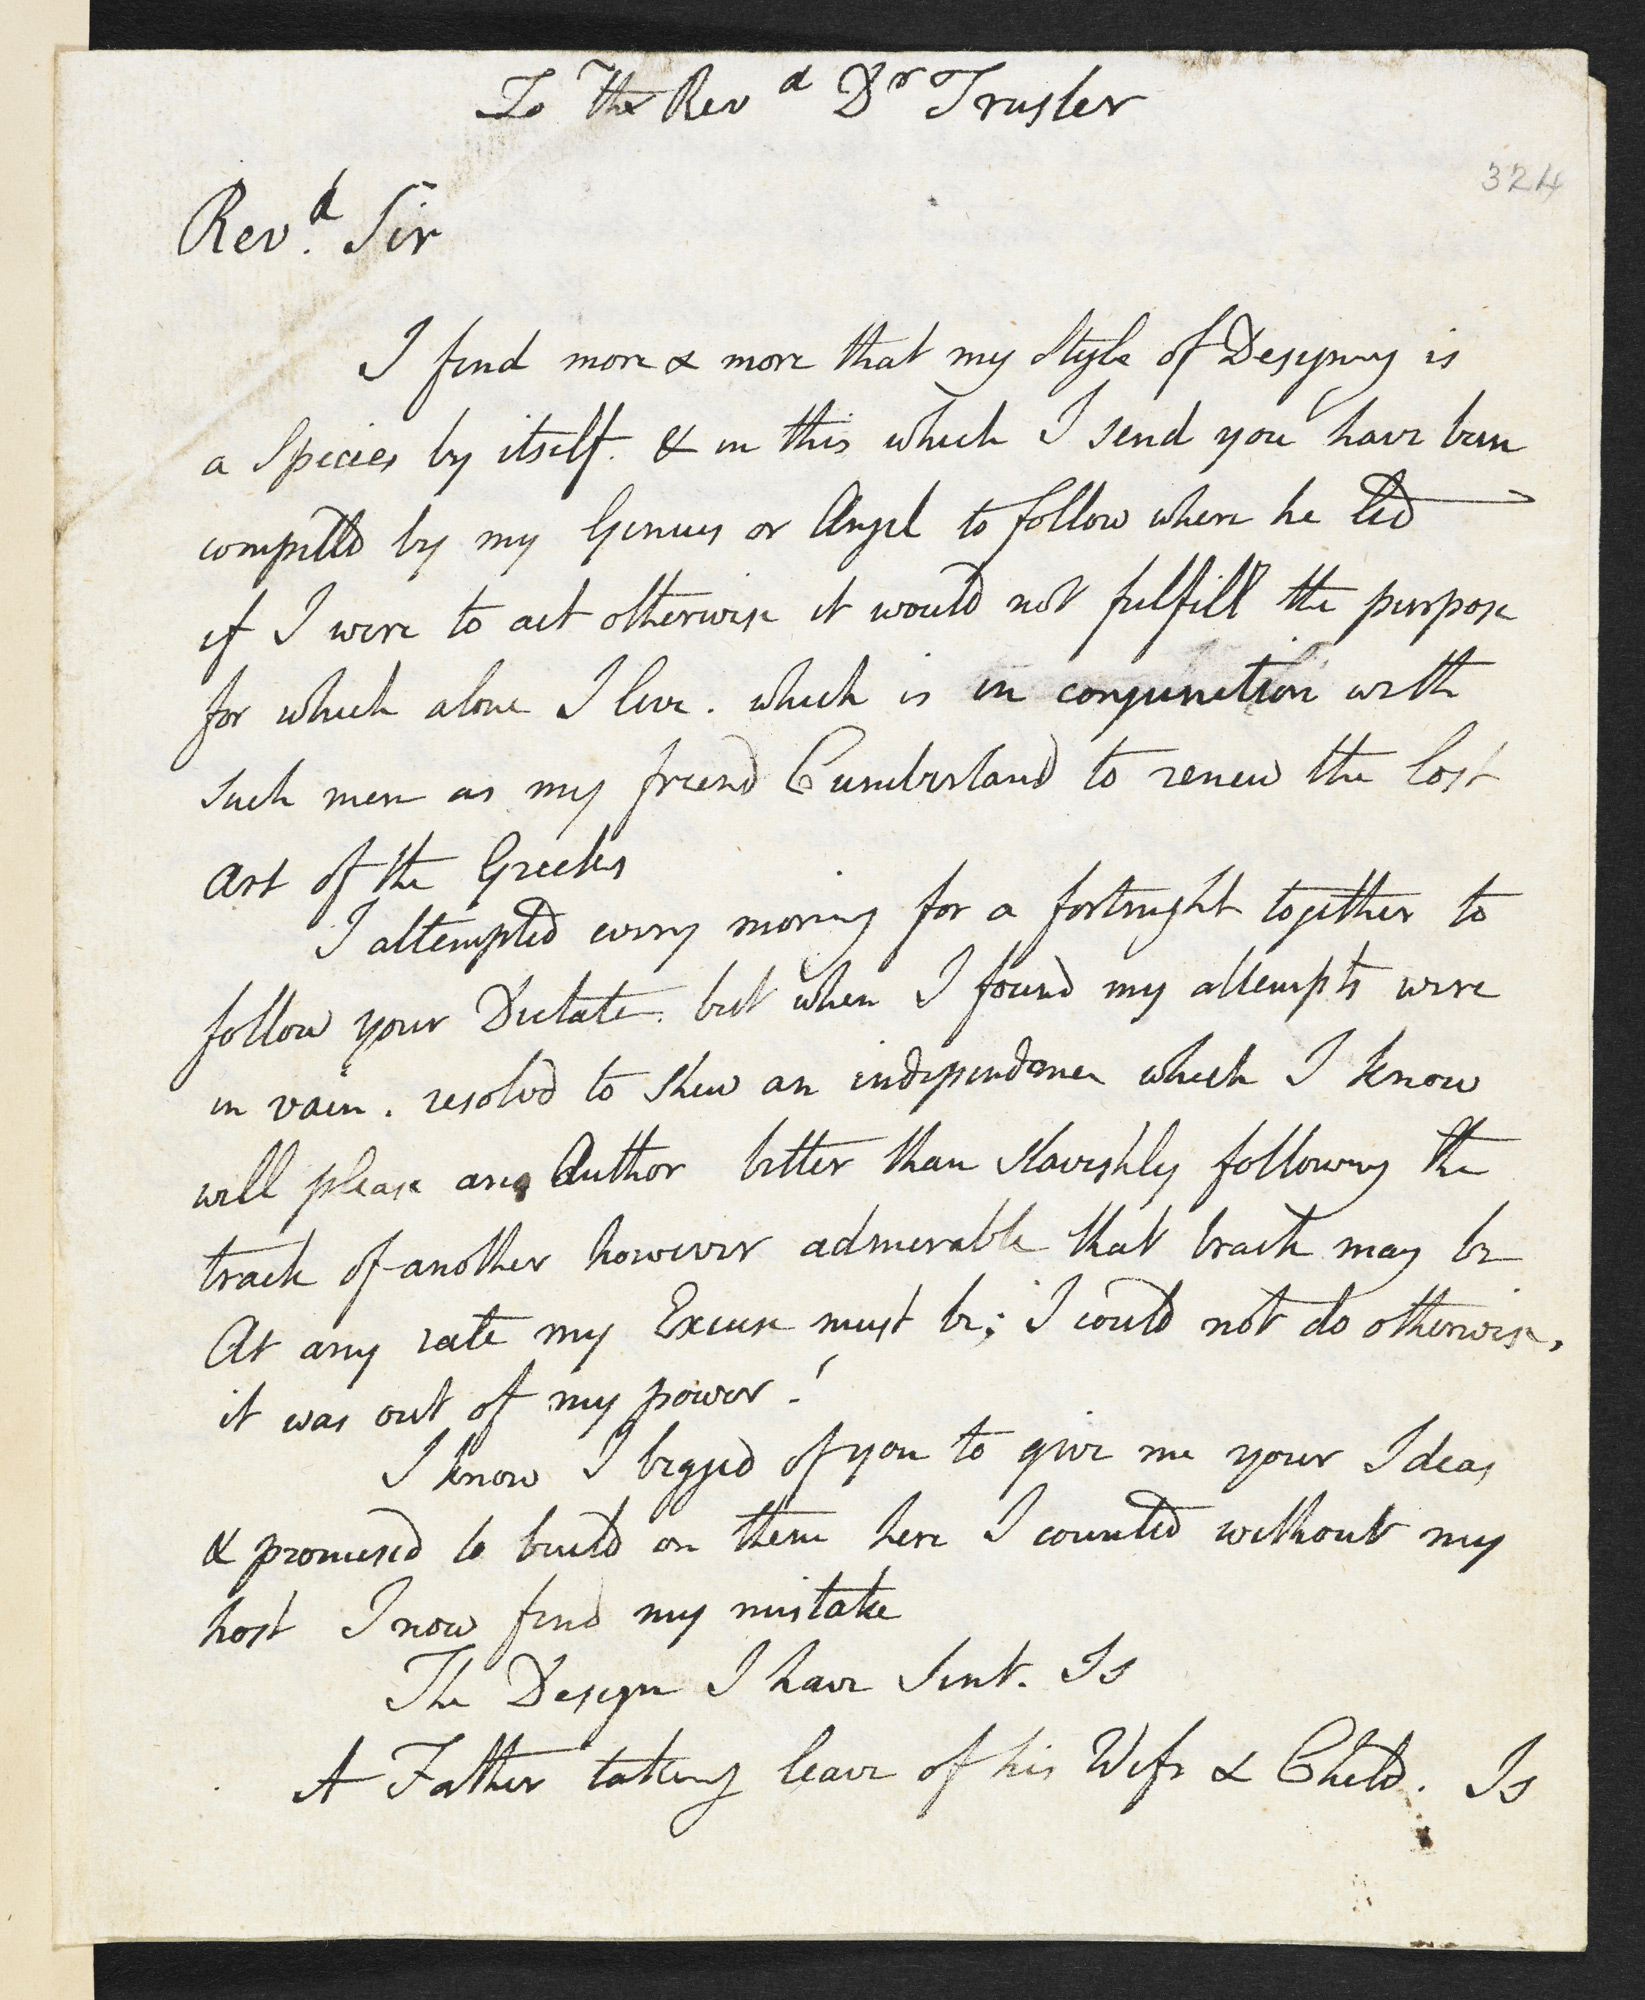 Letter from William Blake to Dr Trusler, 16 August 1799 [folio: 324r]